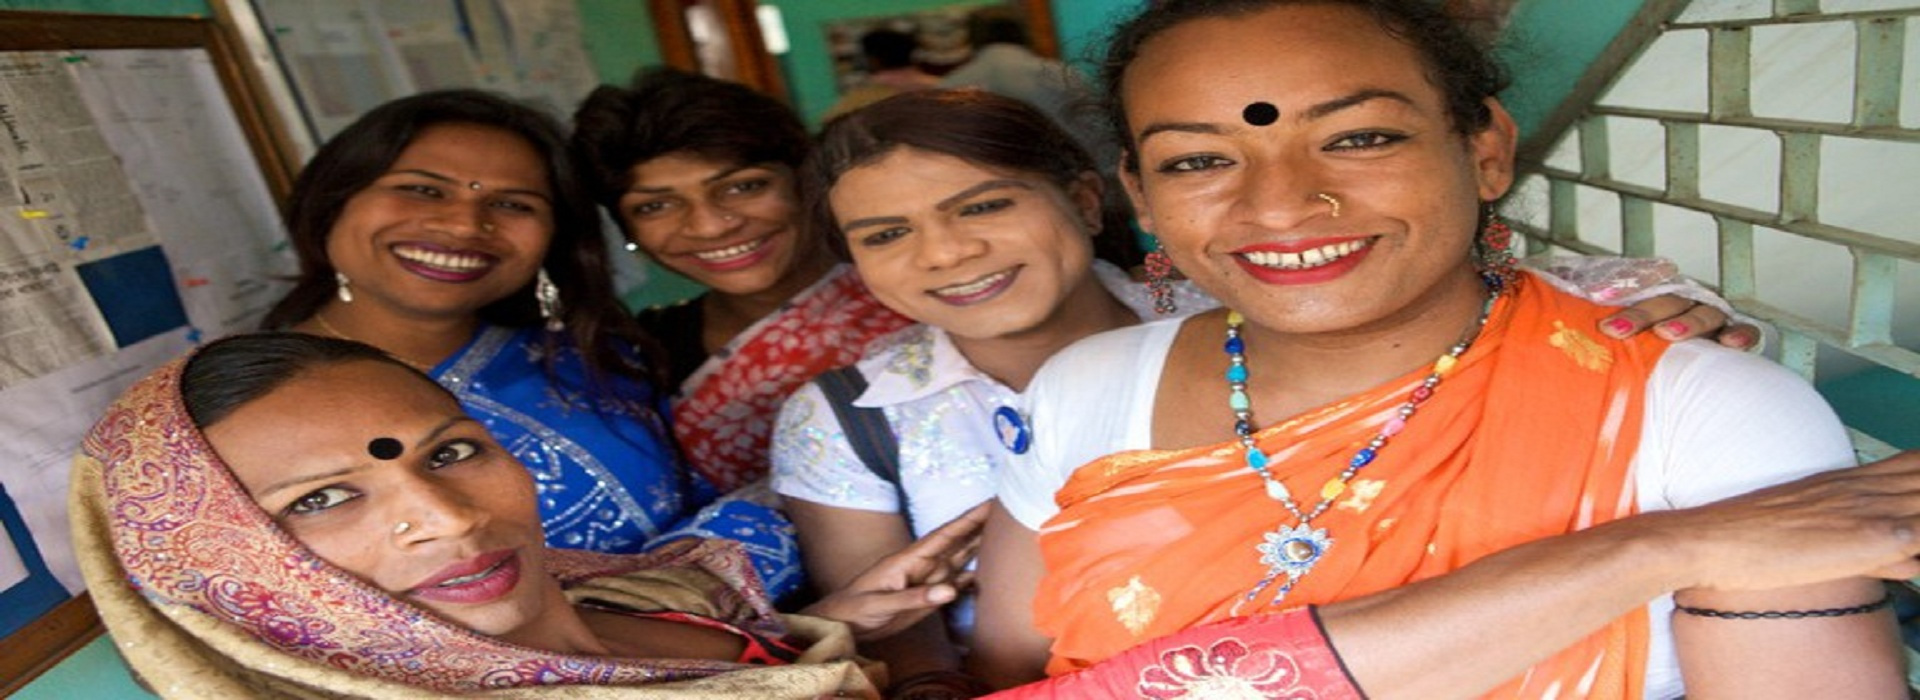 Facts About Transgenders in India Known as Hijras